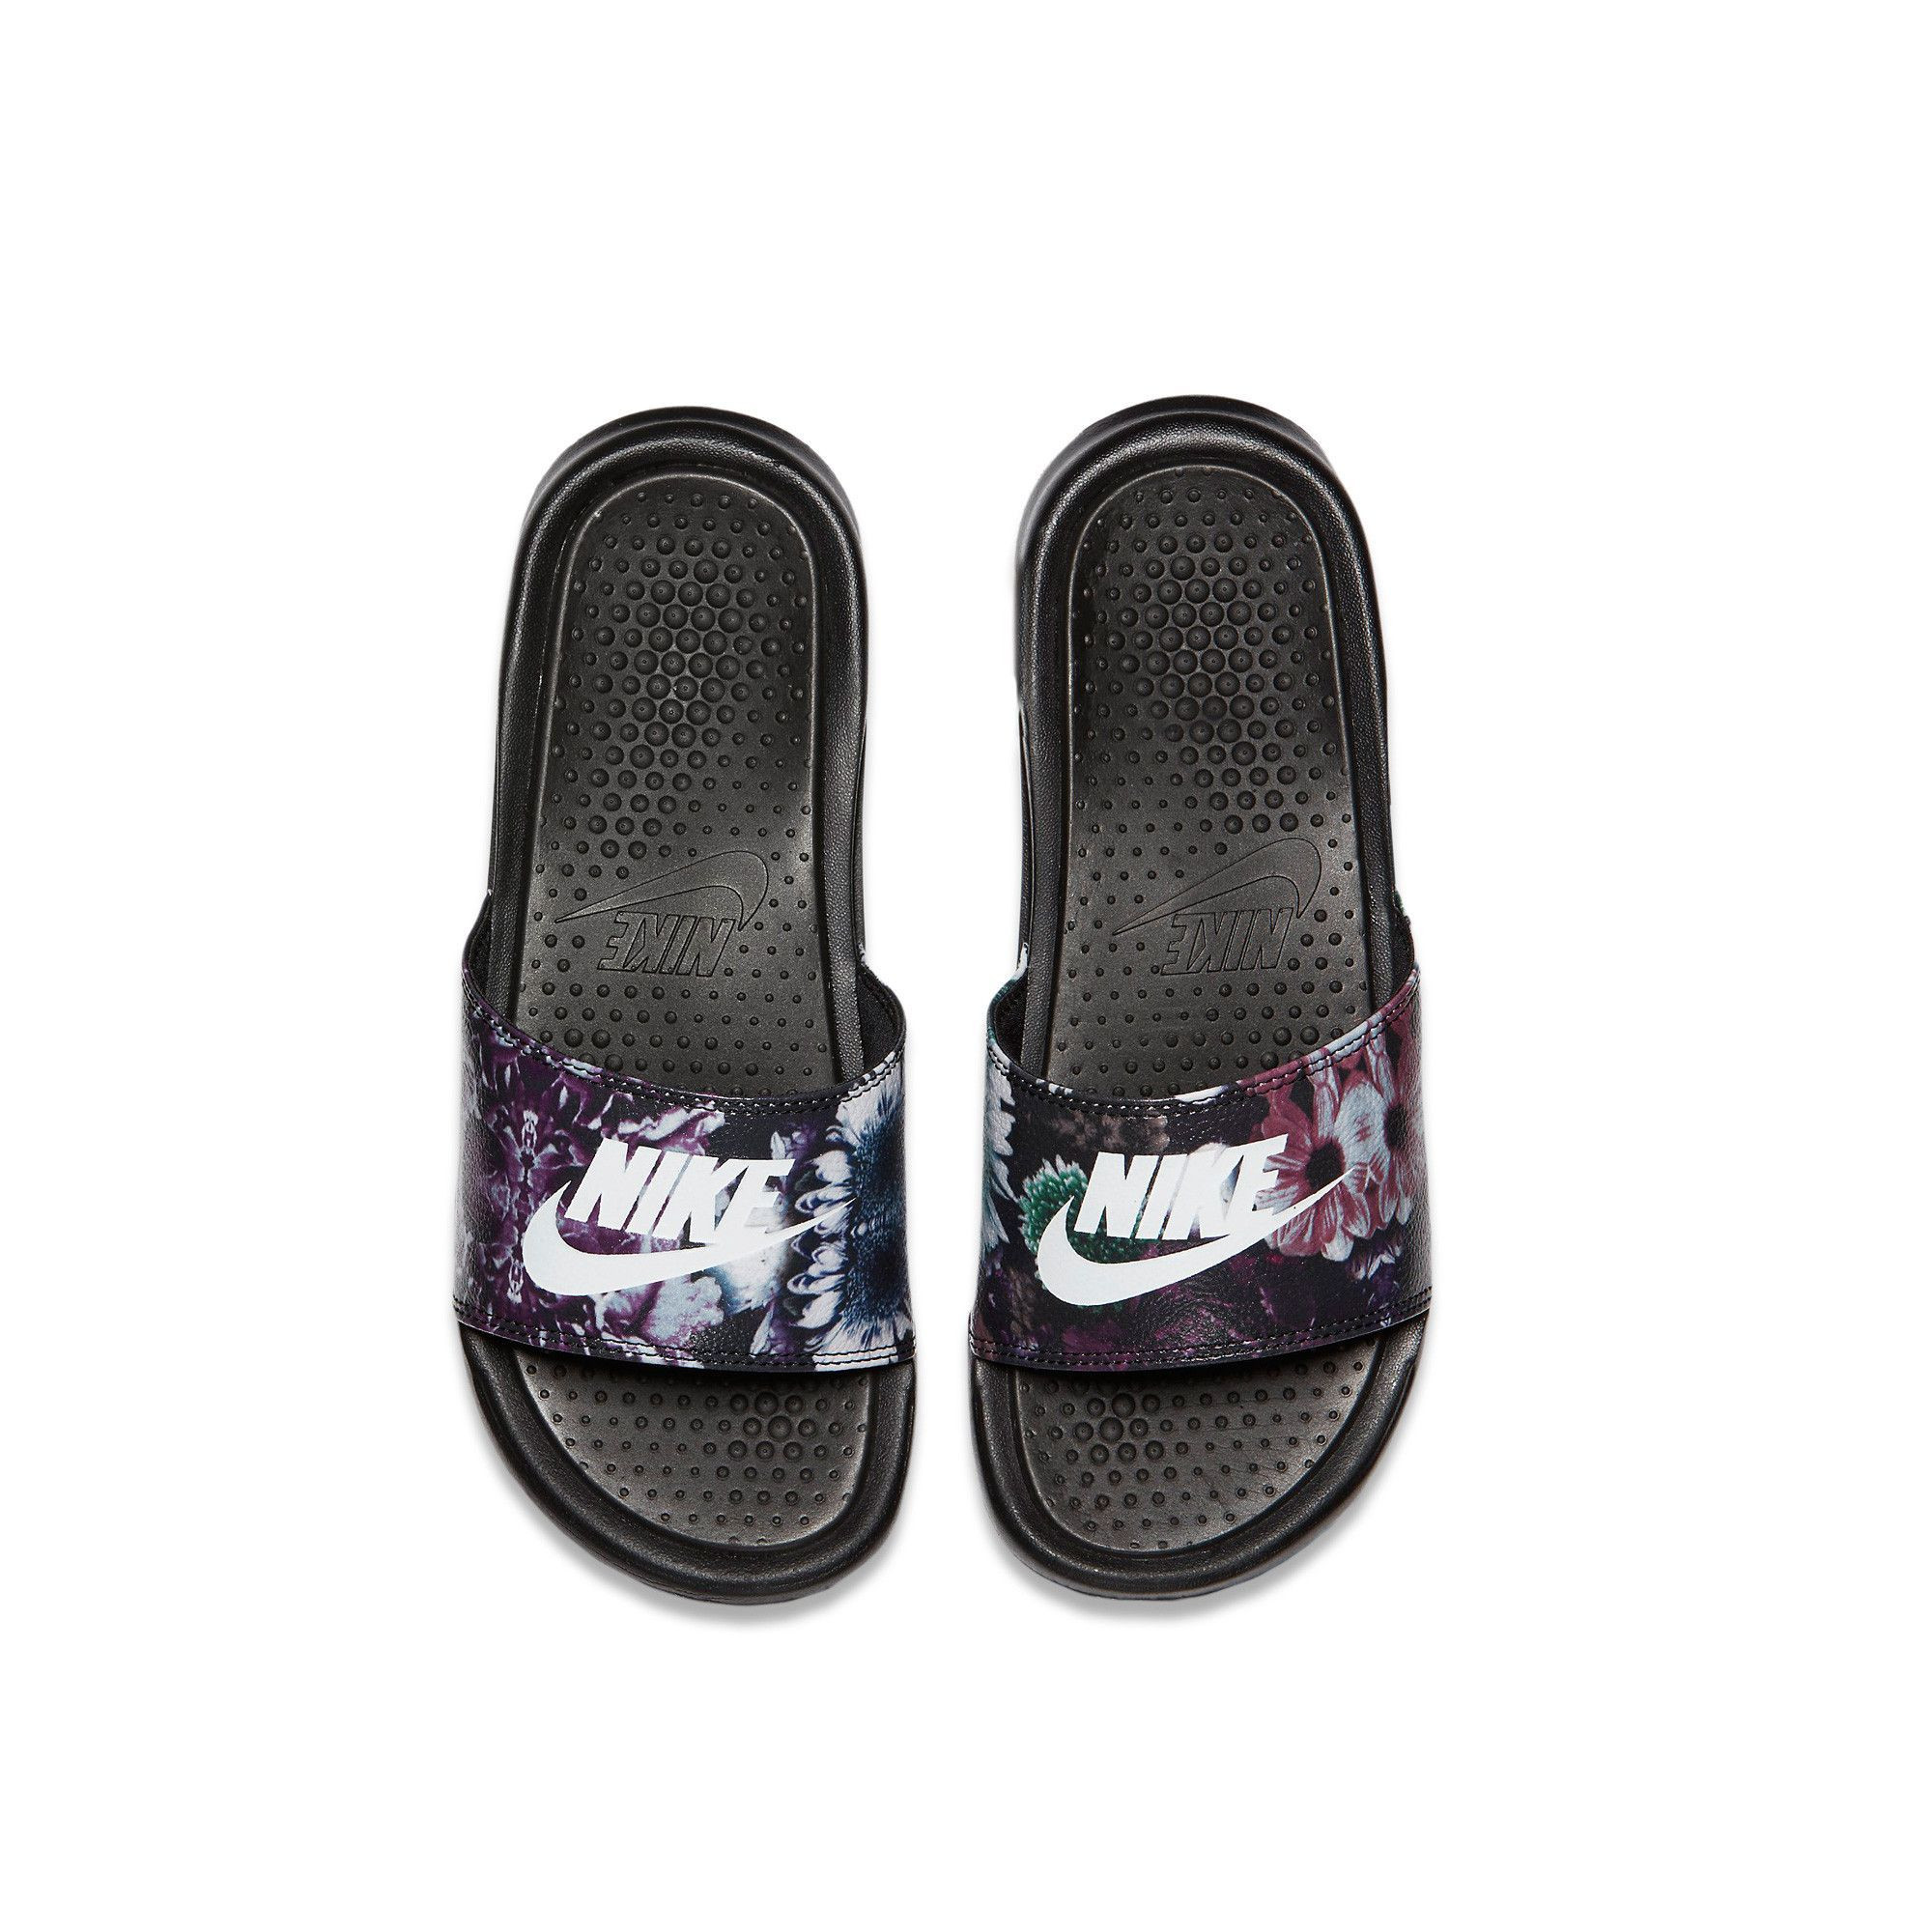 New Womens Nike Benassi JDI Print Slide Sandals goddess of get flowers White/wathet